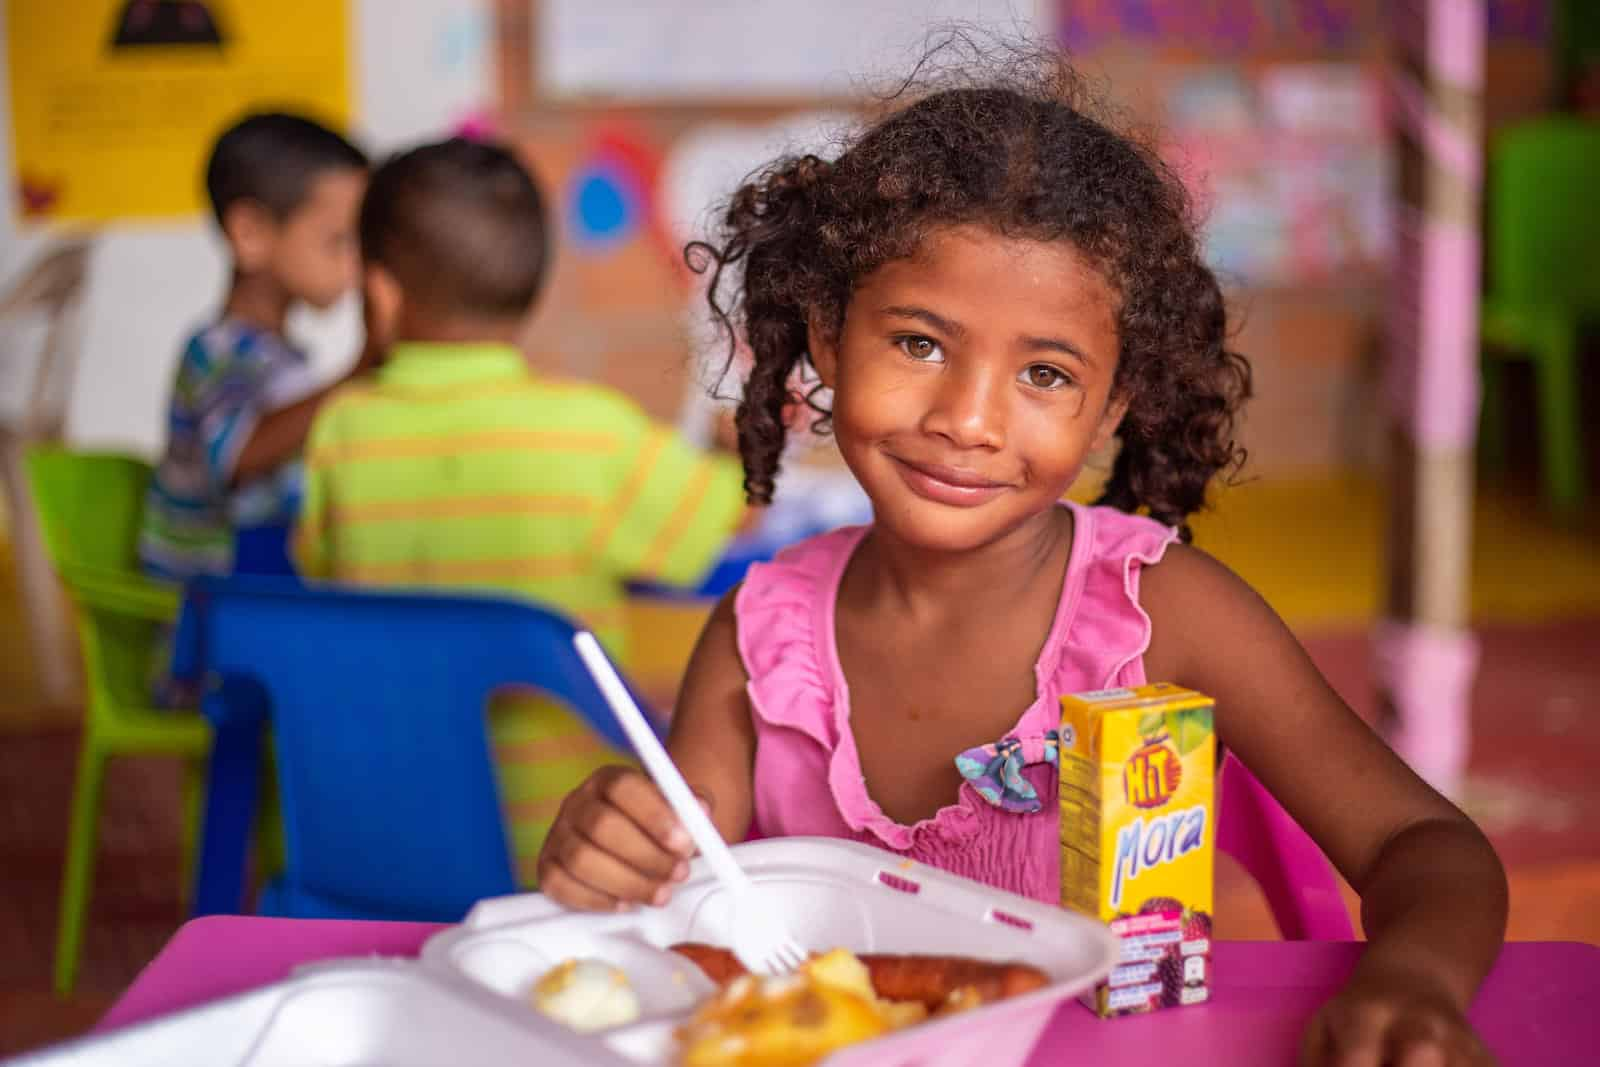 A young girl sits in front of a plate of food.